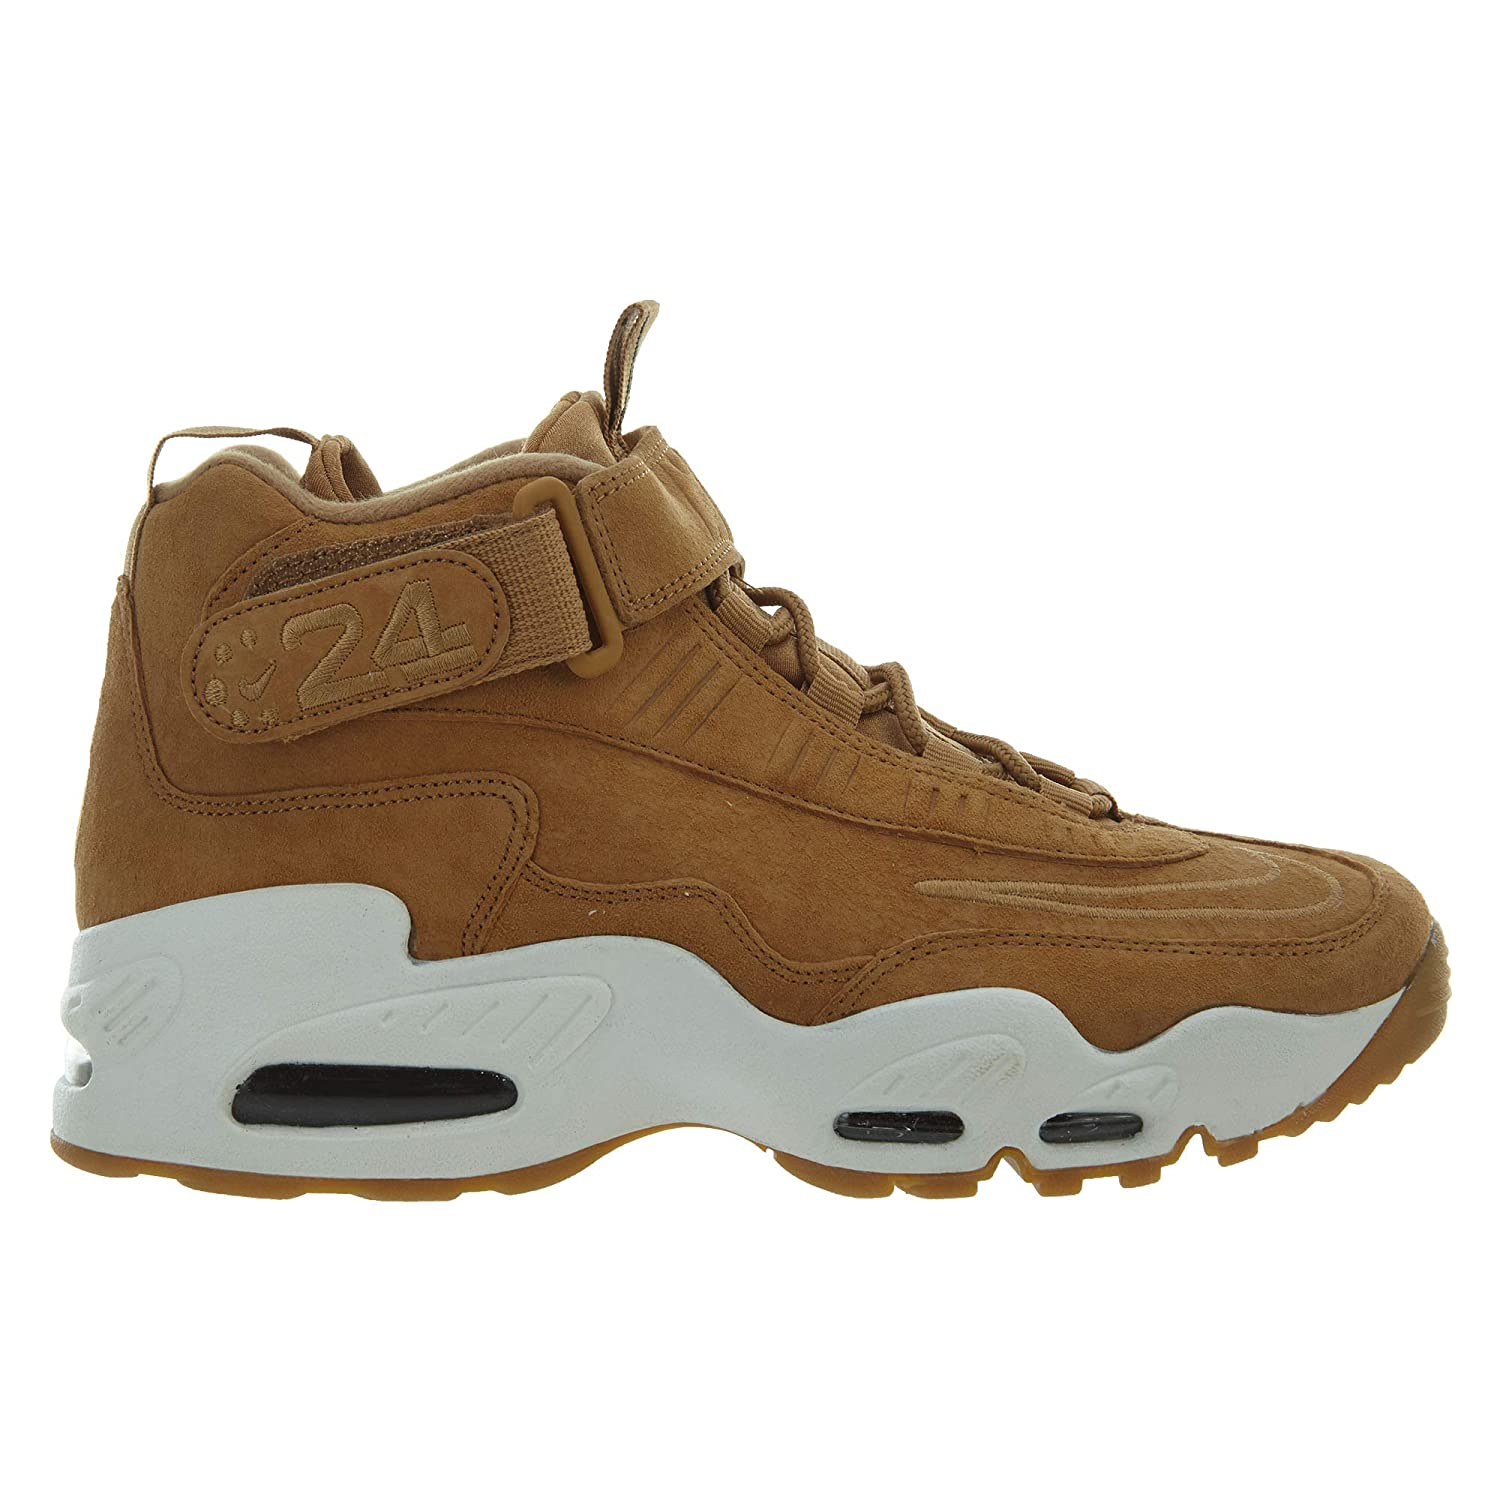 new style 43e24 feb67 Amazon.com   Nike AIR GRIFFEY MAX 1 Mens Sneakers 354912-200   Fashion  Sneakers